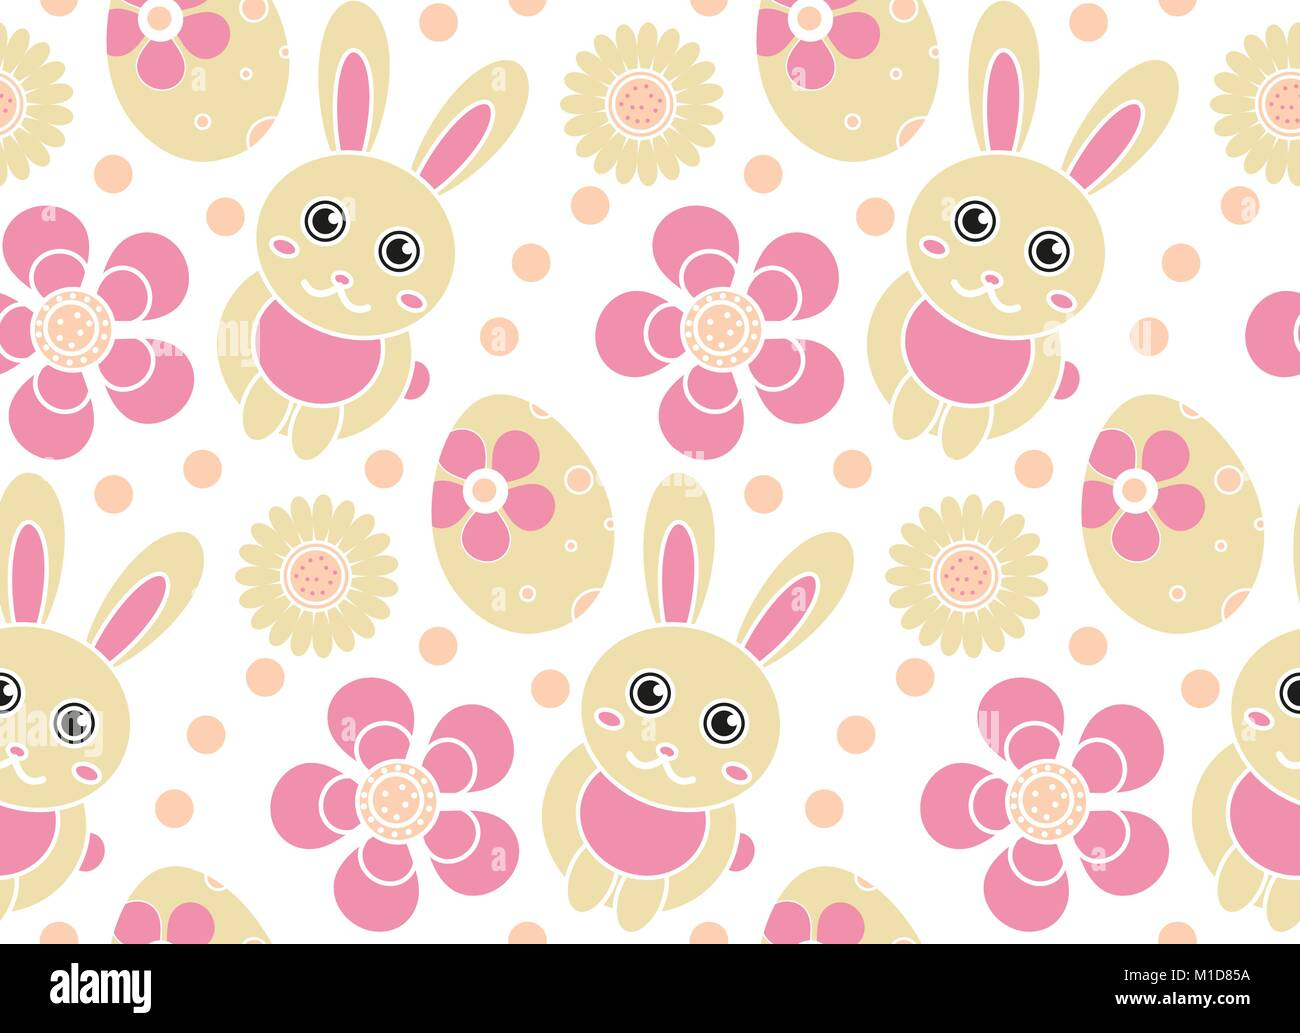 Cute Easter Seamless Pattern. Spring Repeating Textures